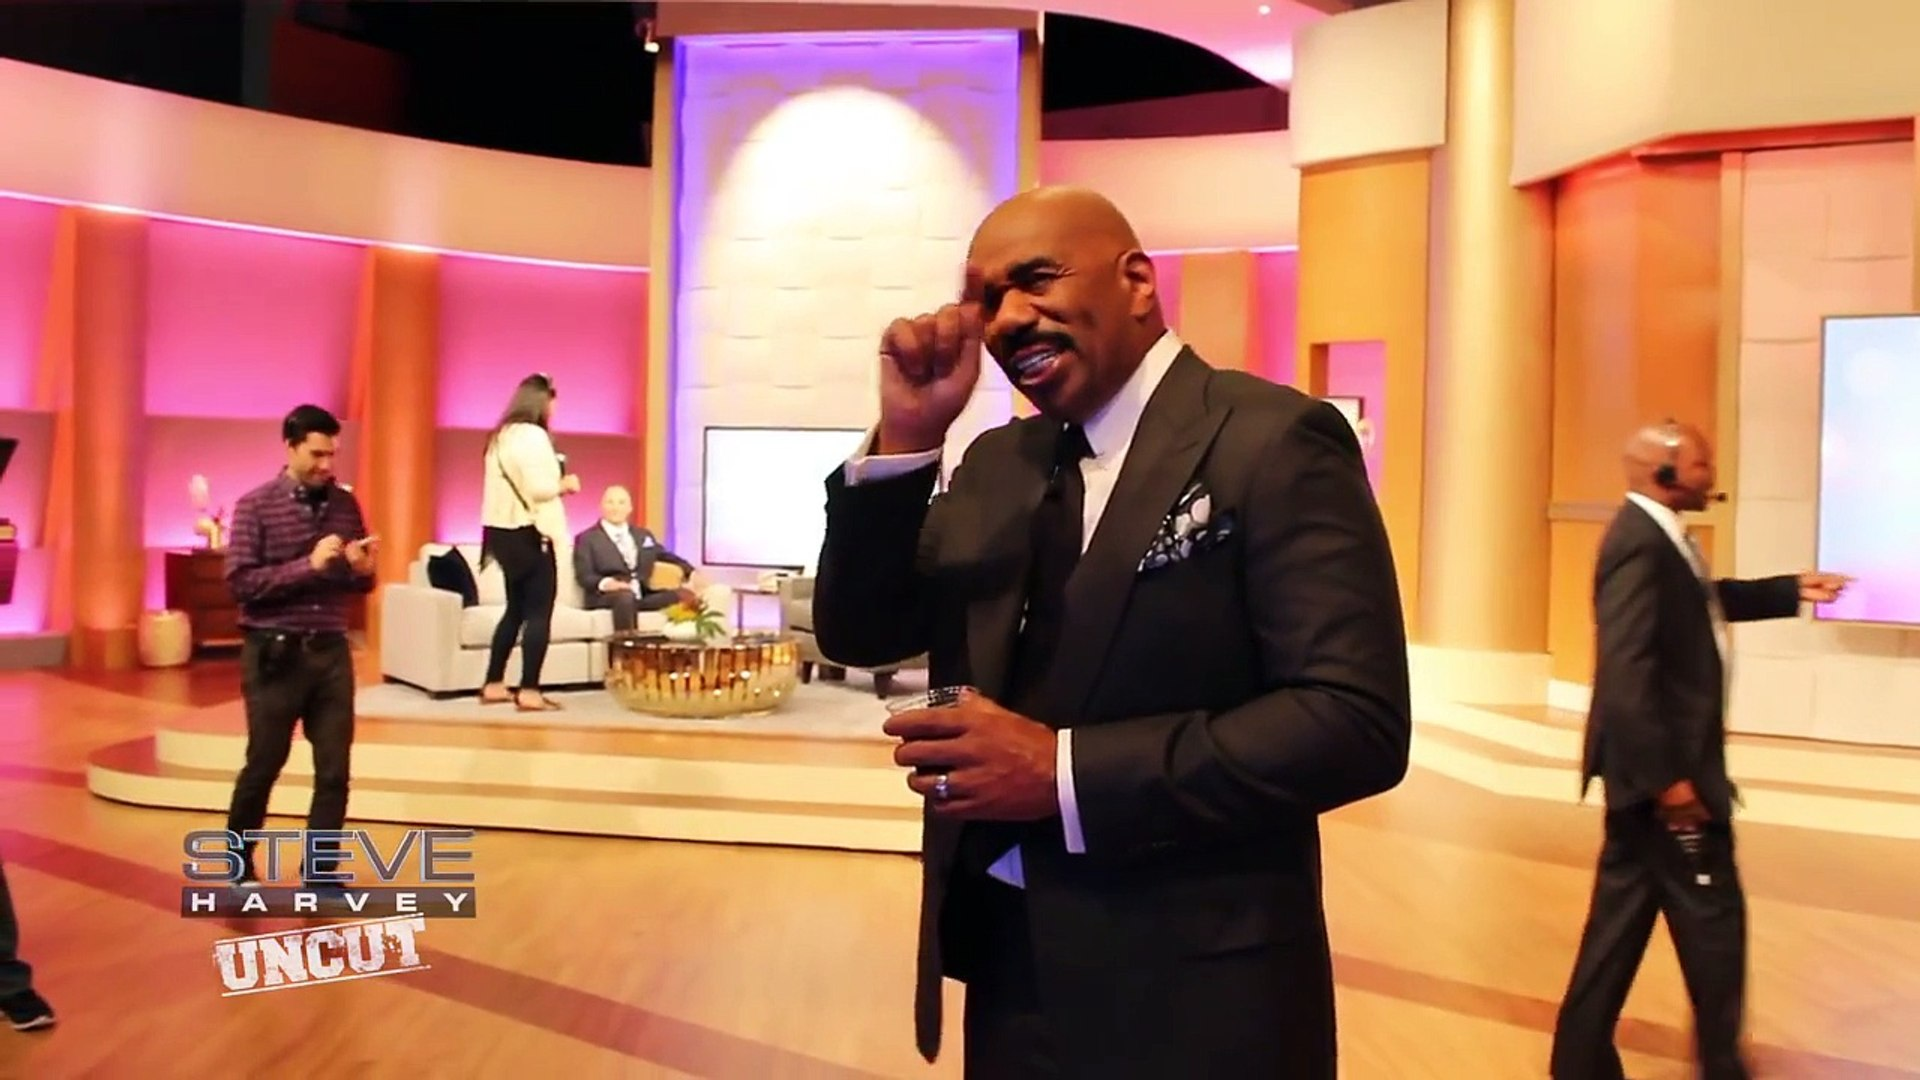 Steve Harvey Uncut: Never lose hope! || STEVE HARVEY